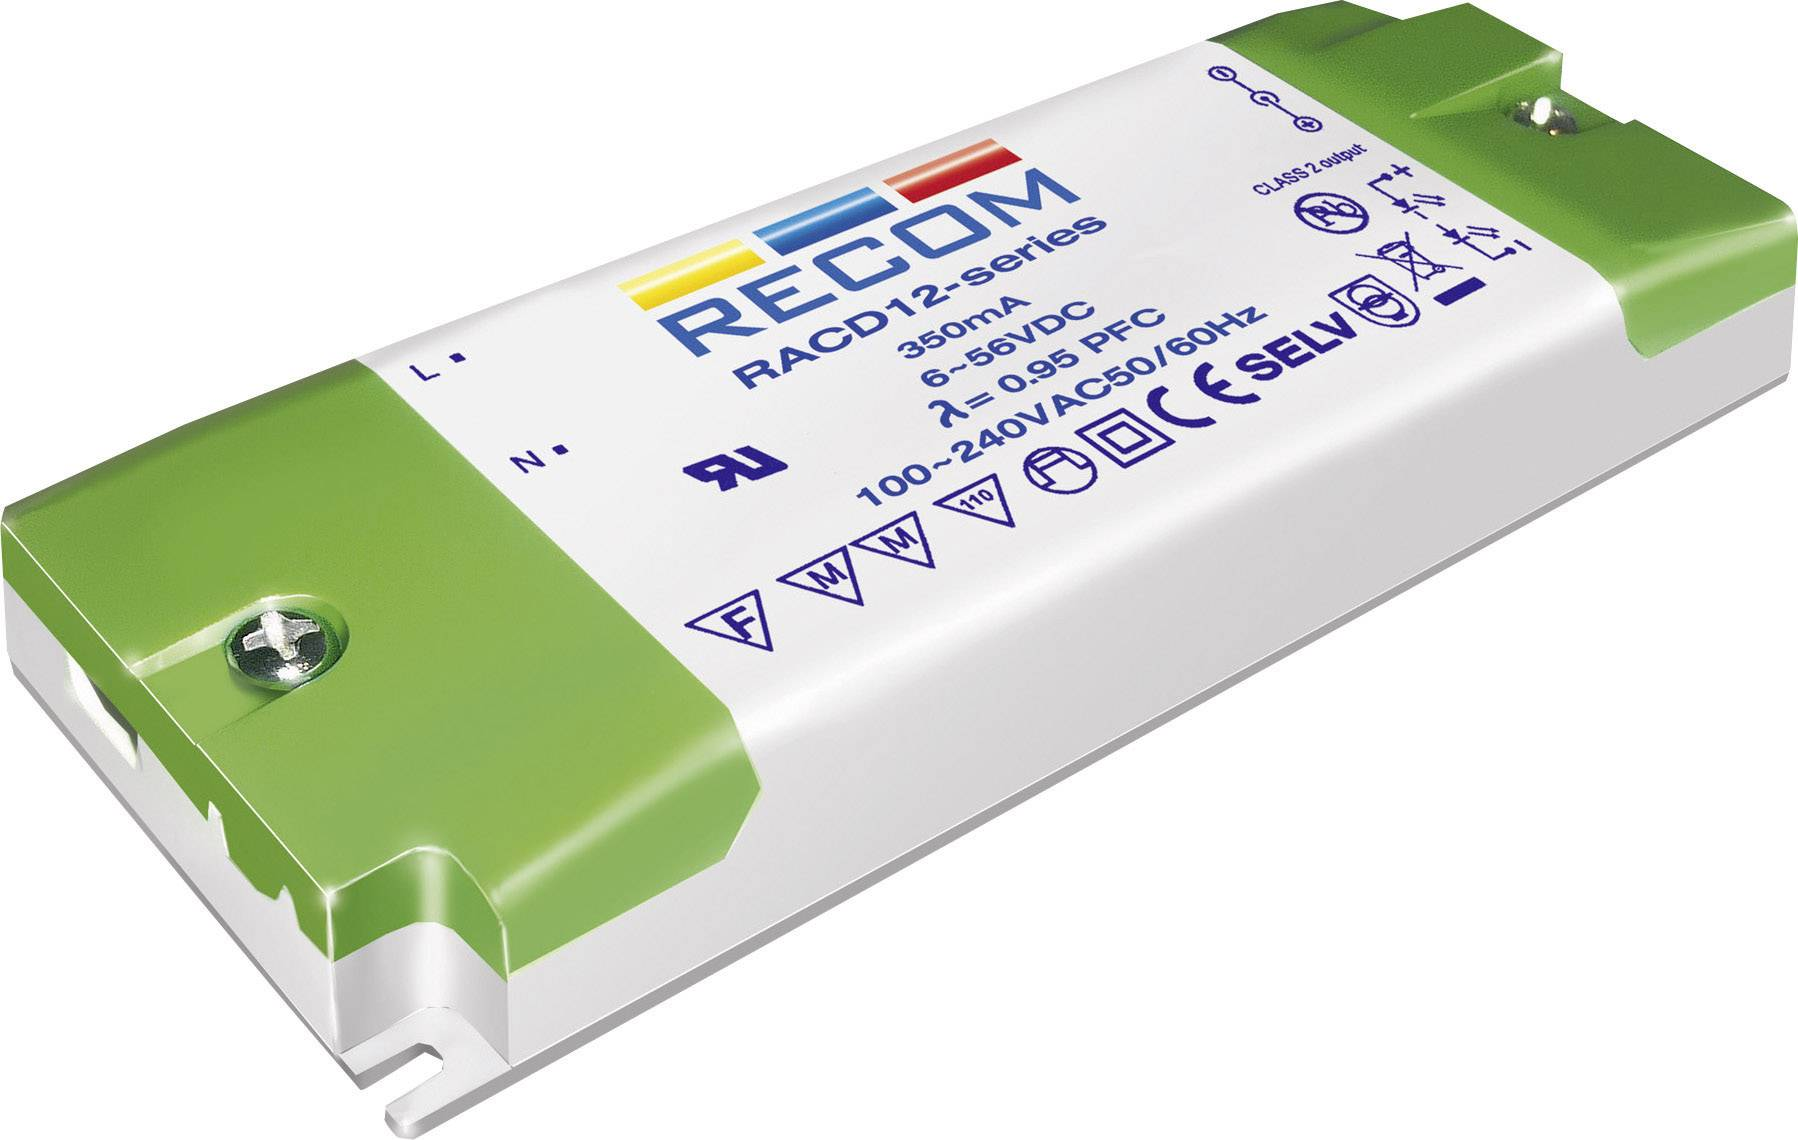 LED driver Recom Lighting RACD12-700, 12 W (max), 0.7 A, 3 - 17 V/DC